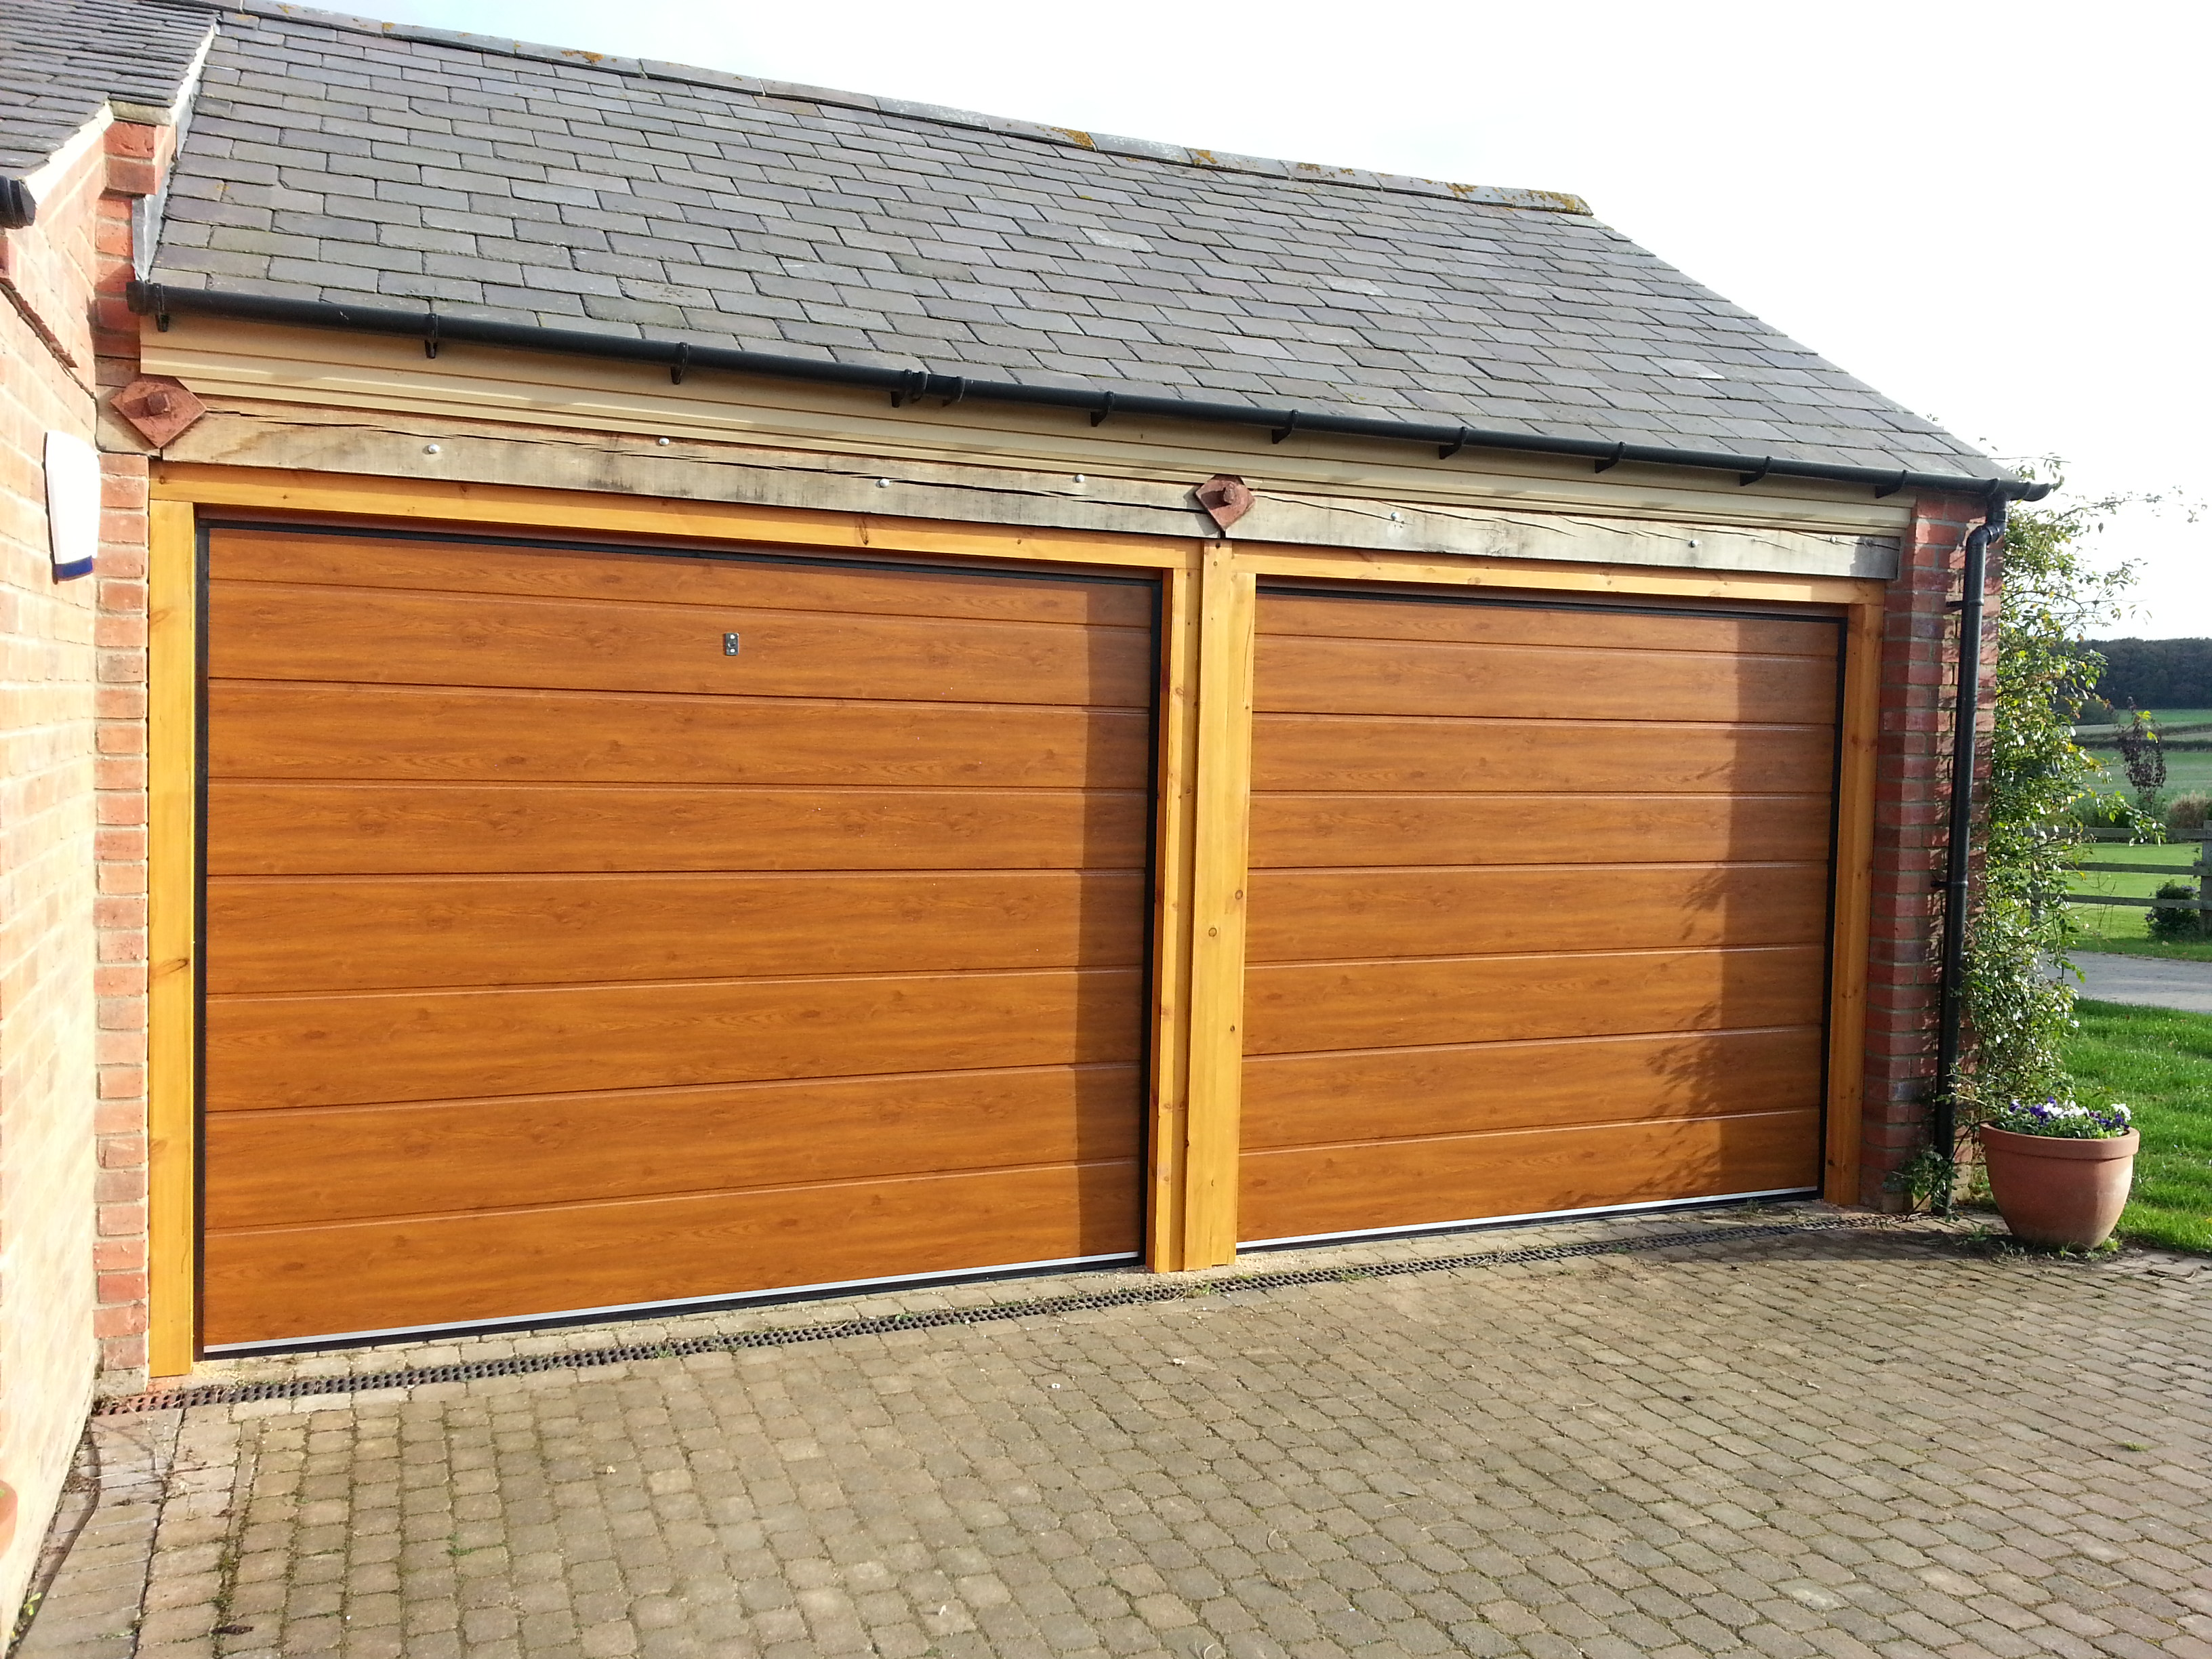 New garage doors grantham the garage door company for Garage doors uk